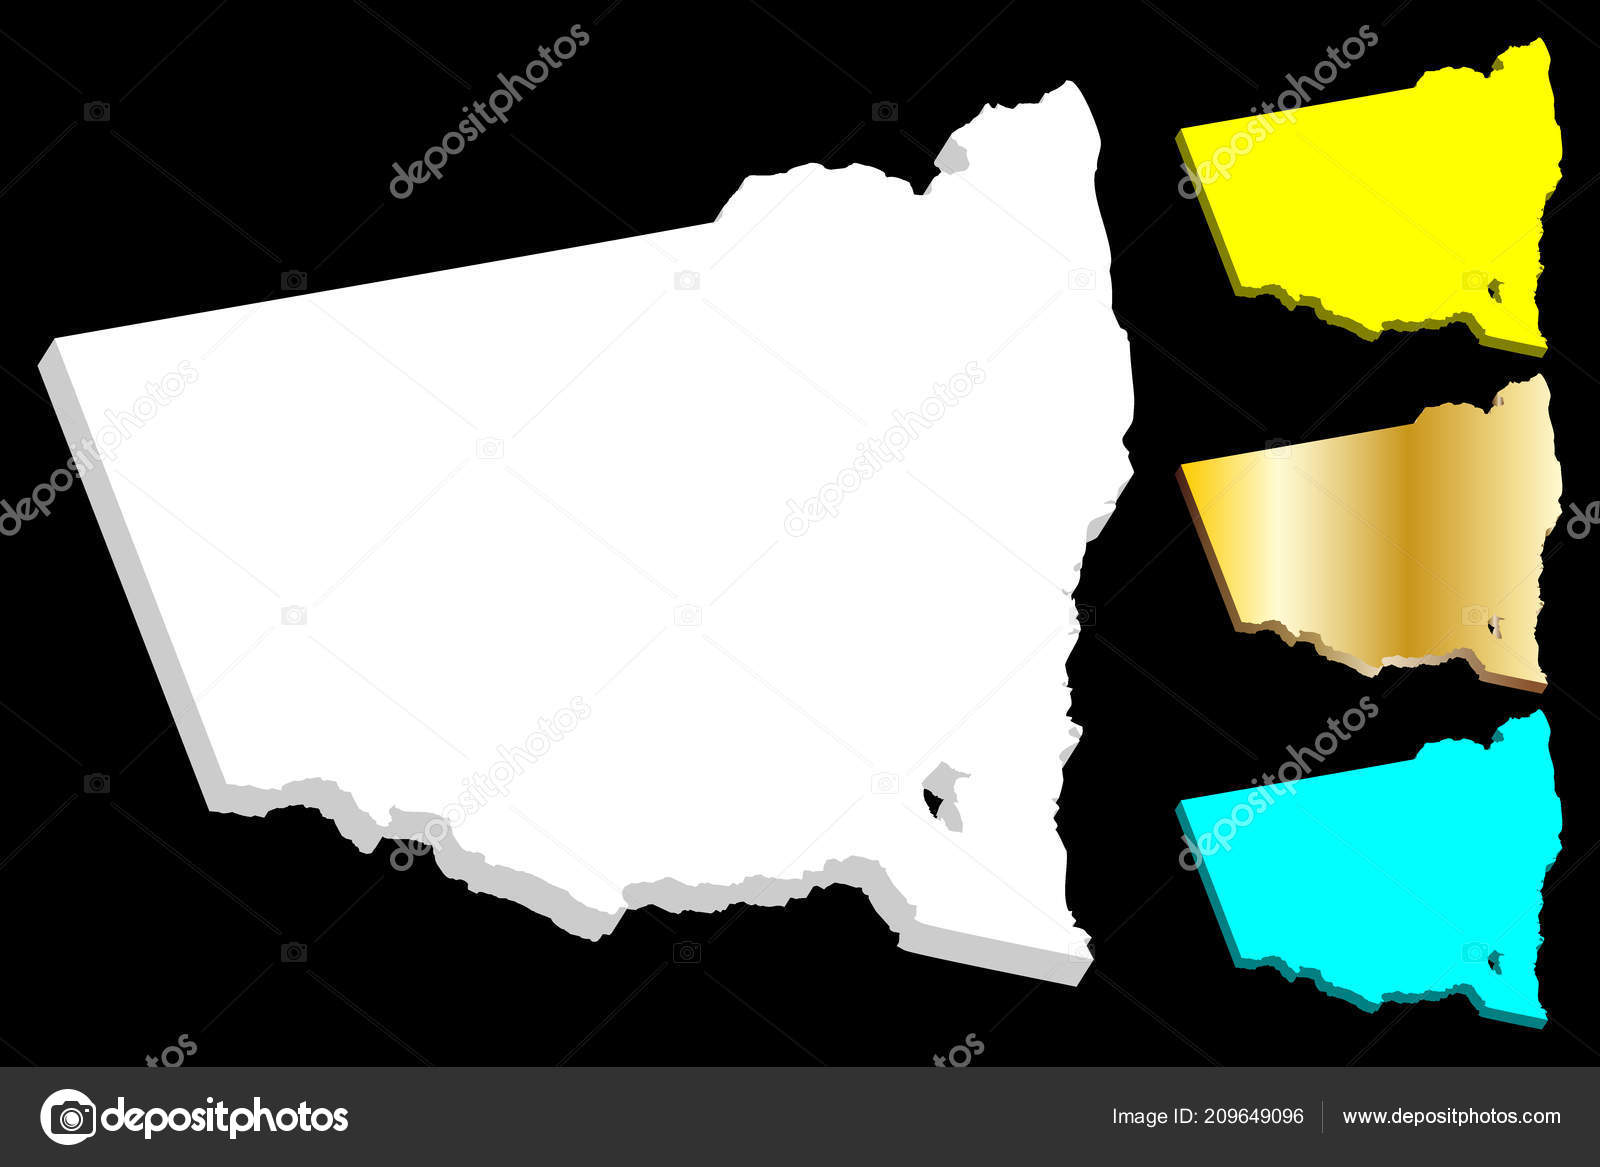 3d Map Of South Australia.Map New South Wales Australian States Territories Nsw White Yellow